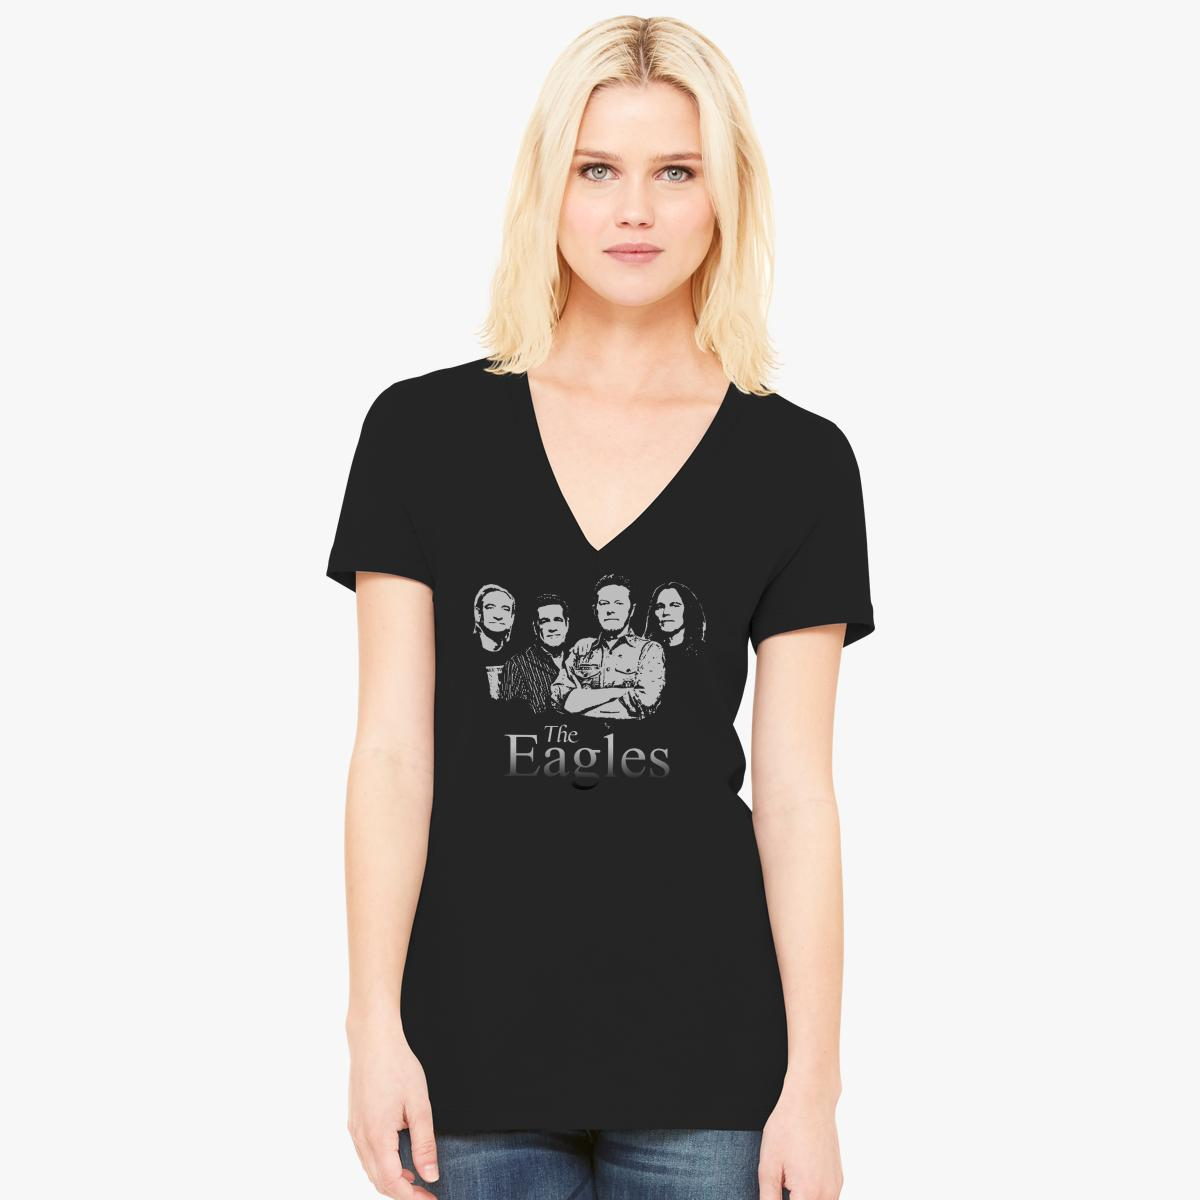 caef8783 Eagles Band T Shirts Uk | Toffee Art